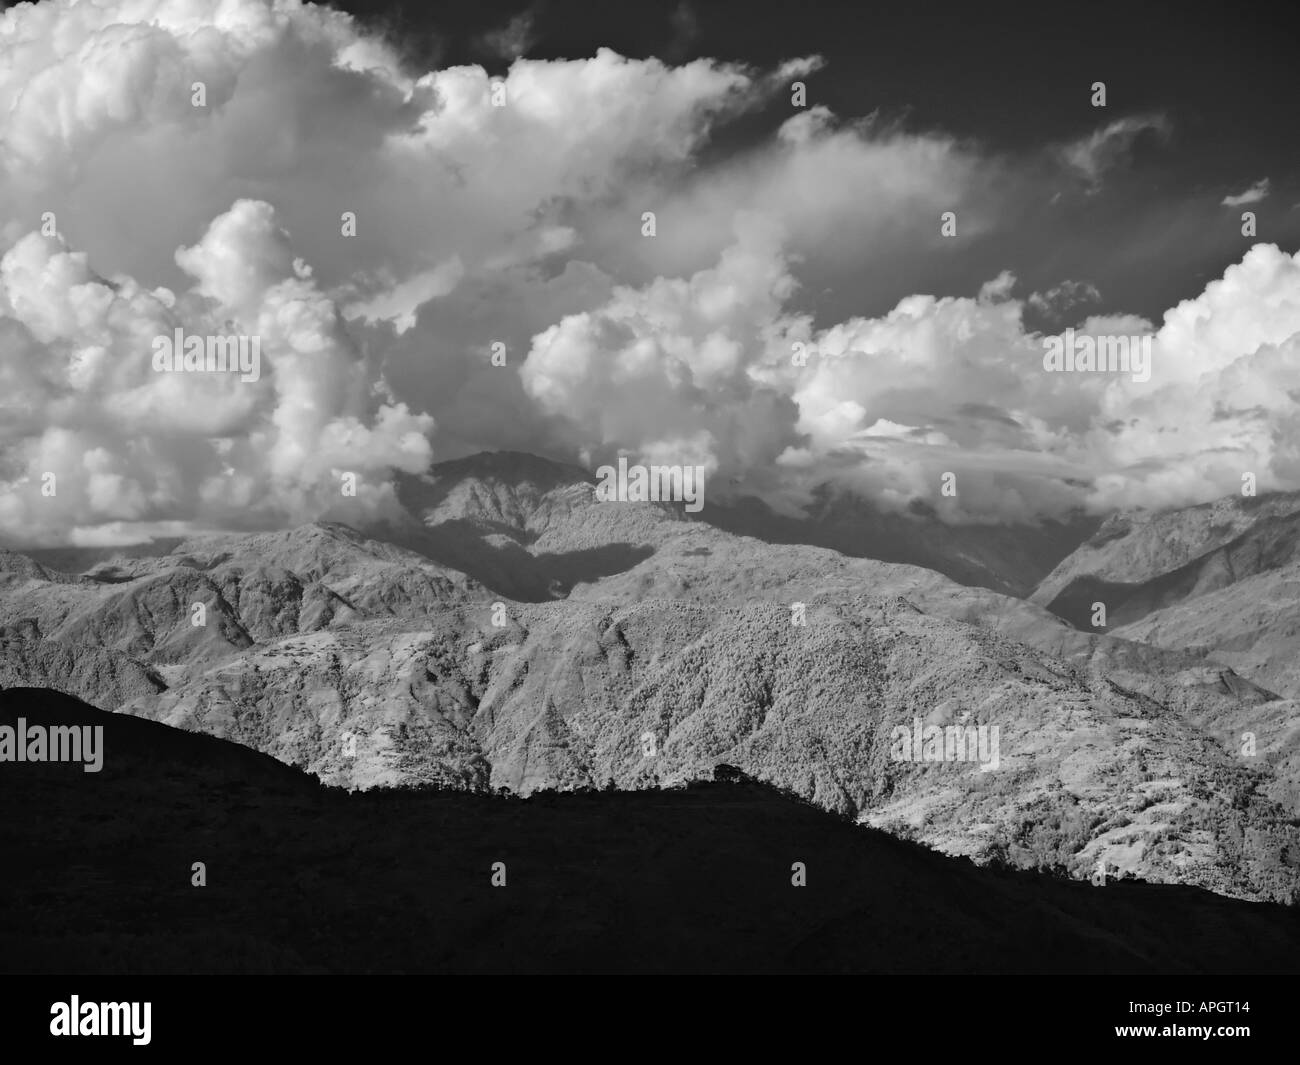 View over the Himalayan foothills and mountains from Nagarkot Kathmandu valley Nepal - Stock Image